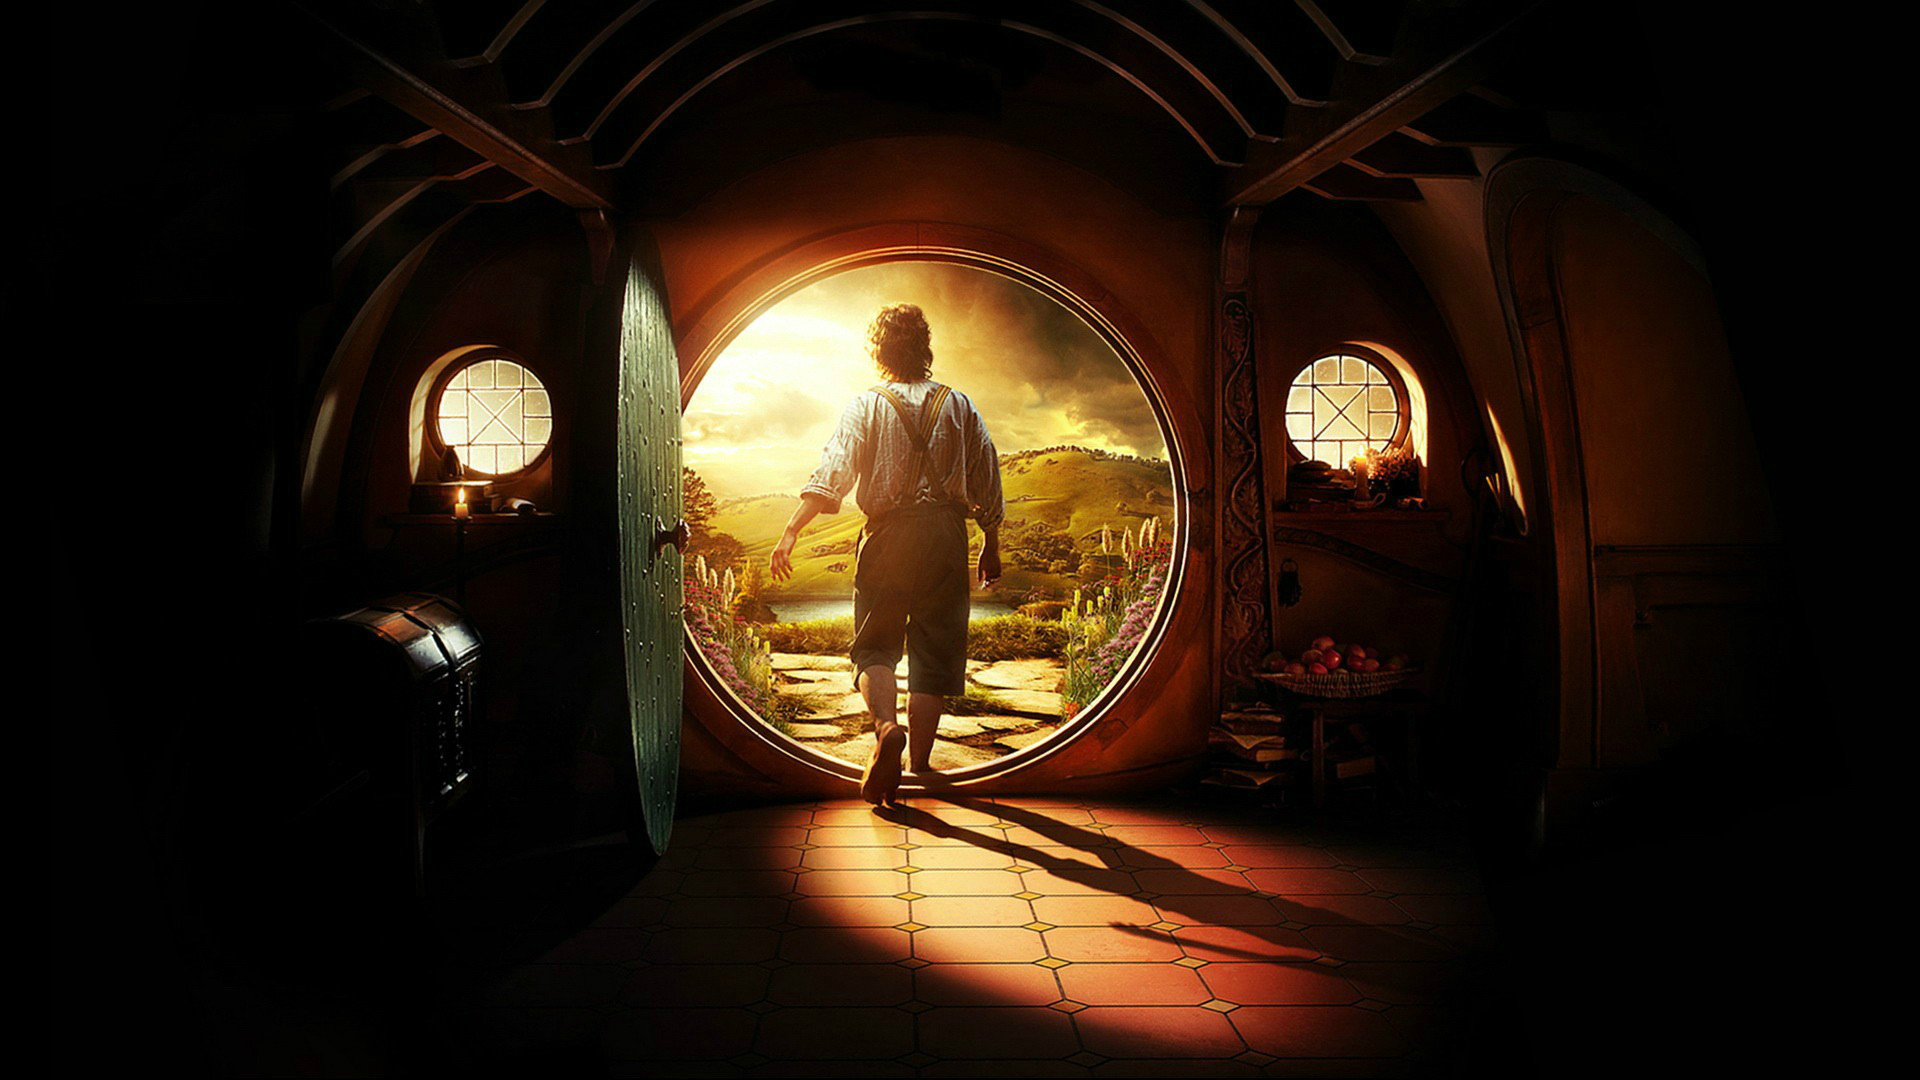 The Hobbit Widscreen HD Wallpaperjpg 1920x1080